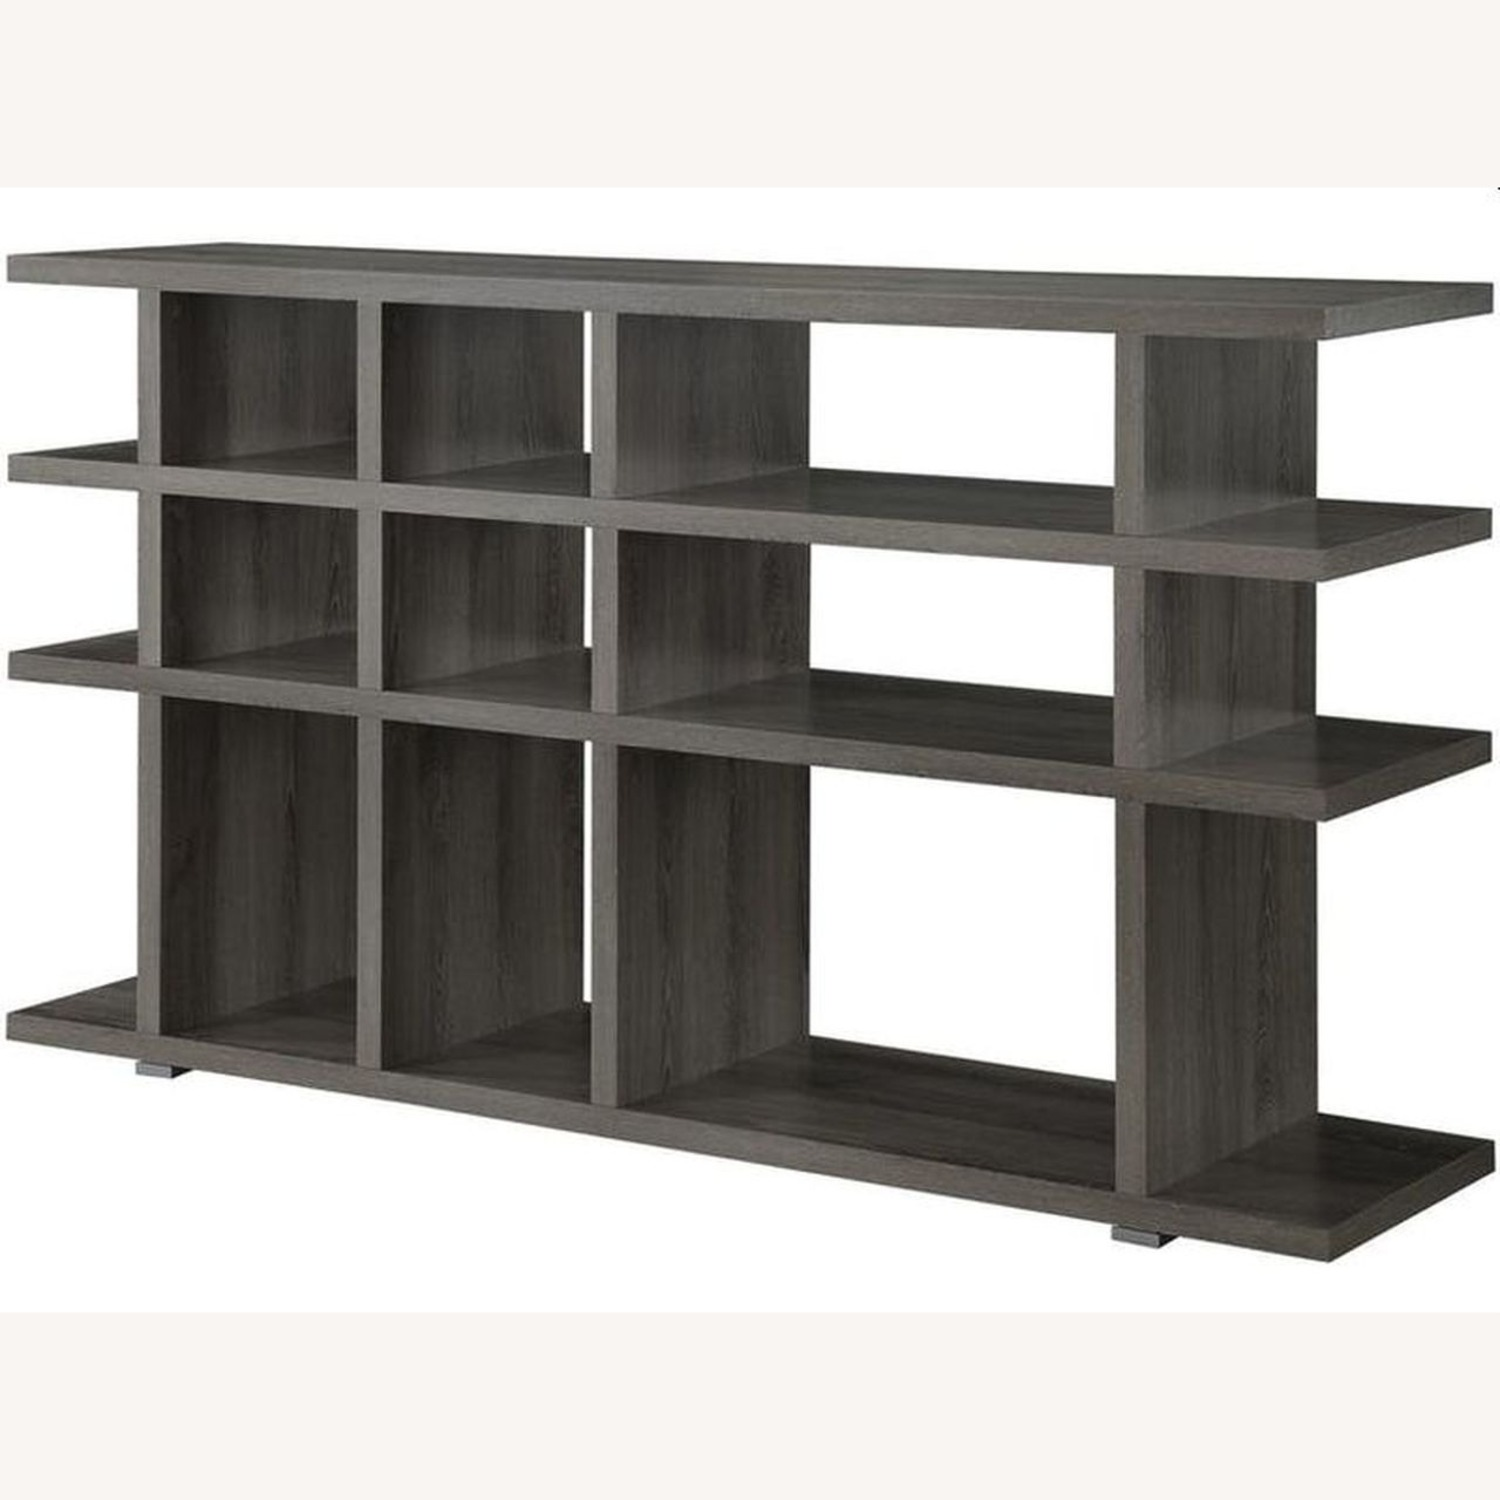 Rustic Bookcase In Weathered Grey Finish - image-0